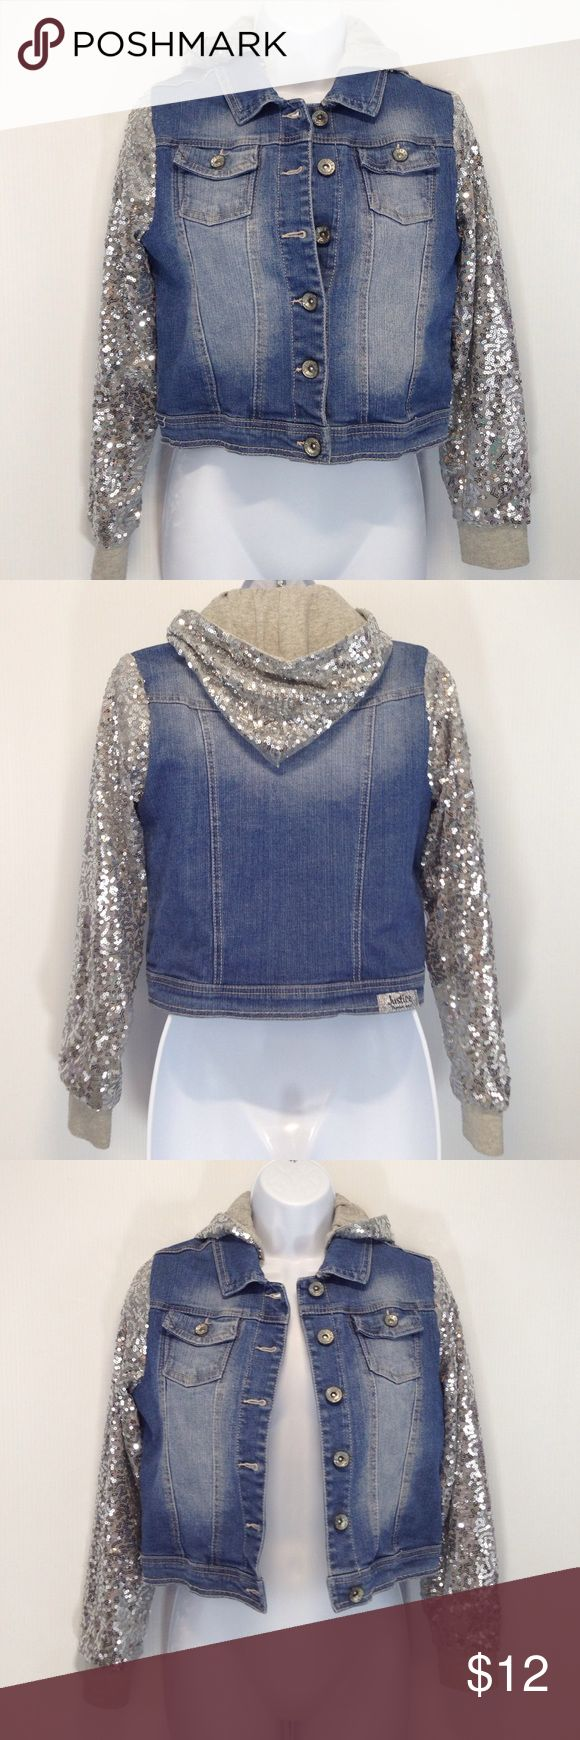 Sz 14 Justice Silver Sparkle Jean Jacket Hoodie Super cute Justice Jean Jacket with sparkly silver sleeves on a sweatshirt material for both the sleeves and hood. The Jean Jacket portion is whispered or lightened in certain areas purposefully. The jacket is in terrific condition. It is a size 14 girls. Justice Jackets & Coats Jean Jackets